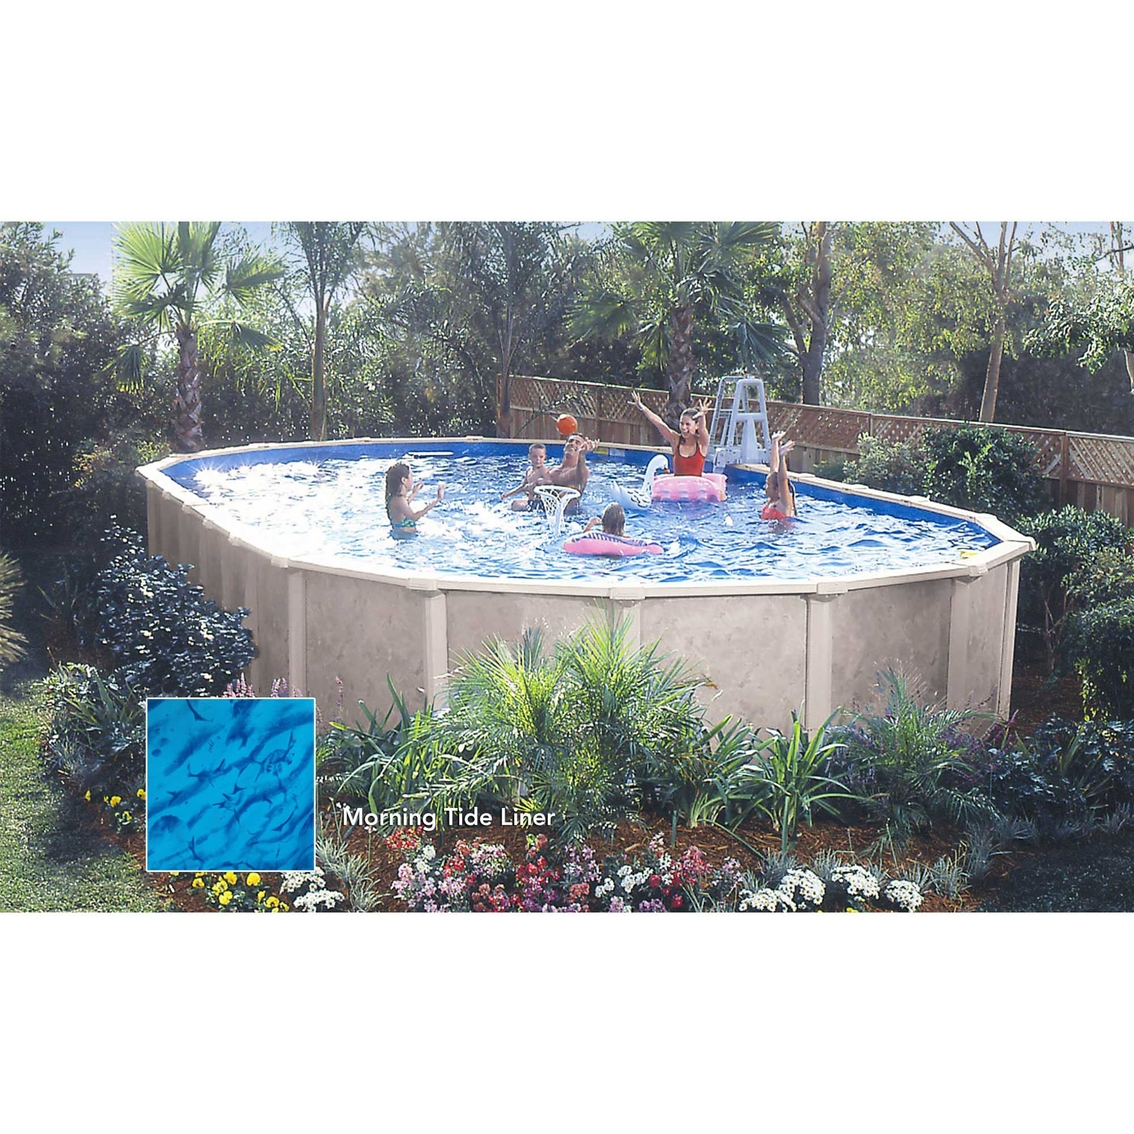 Lomart sandstone oval above ground pool package pools for Above ground pool packages cheap